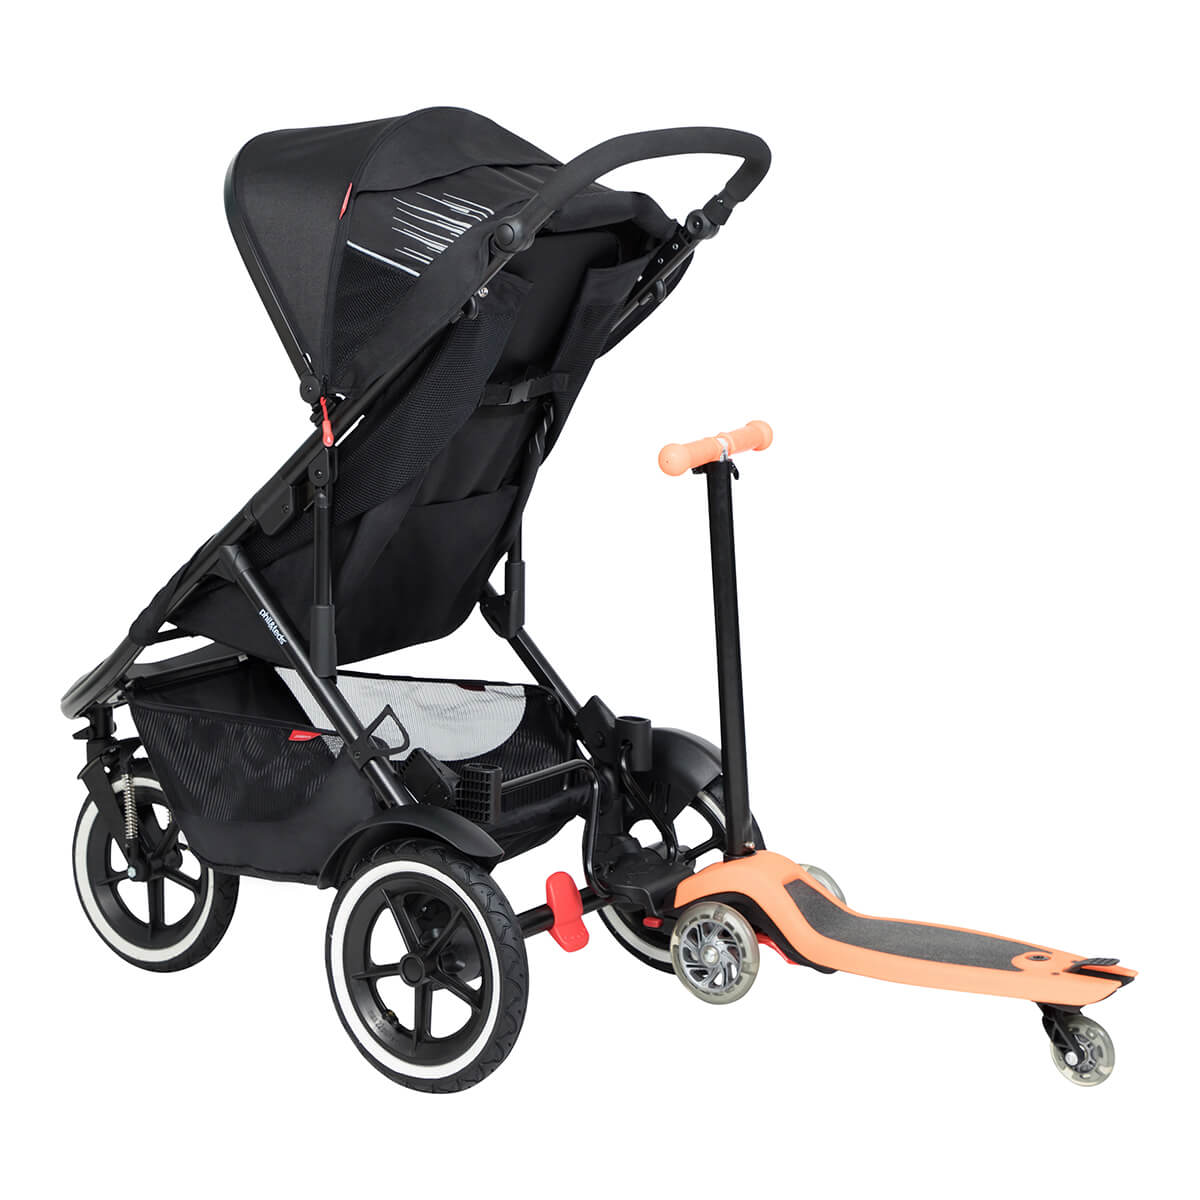 https://cdn.accentuate.io/4546157871209/19119322824809/philteds-sport-buggy-with-freerider-stroller-board-in-rear-v1625778311293.jpg?1200x1200